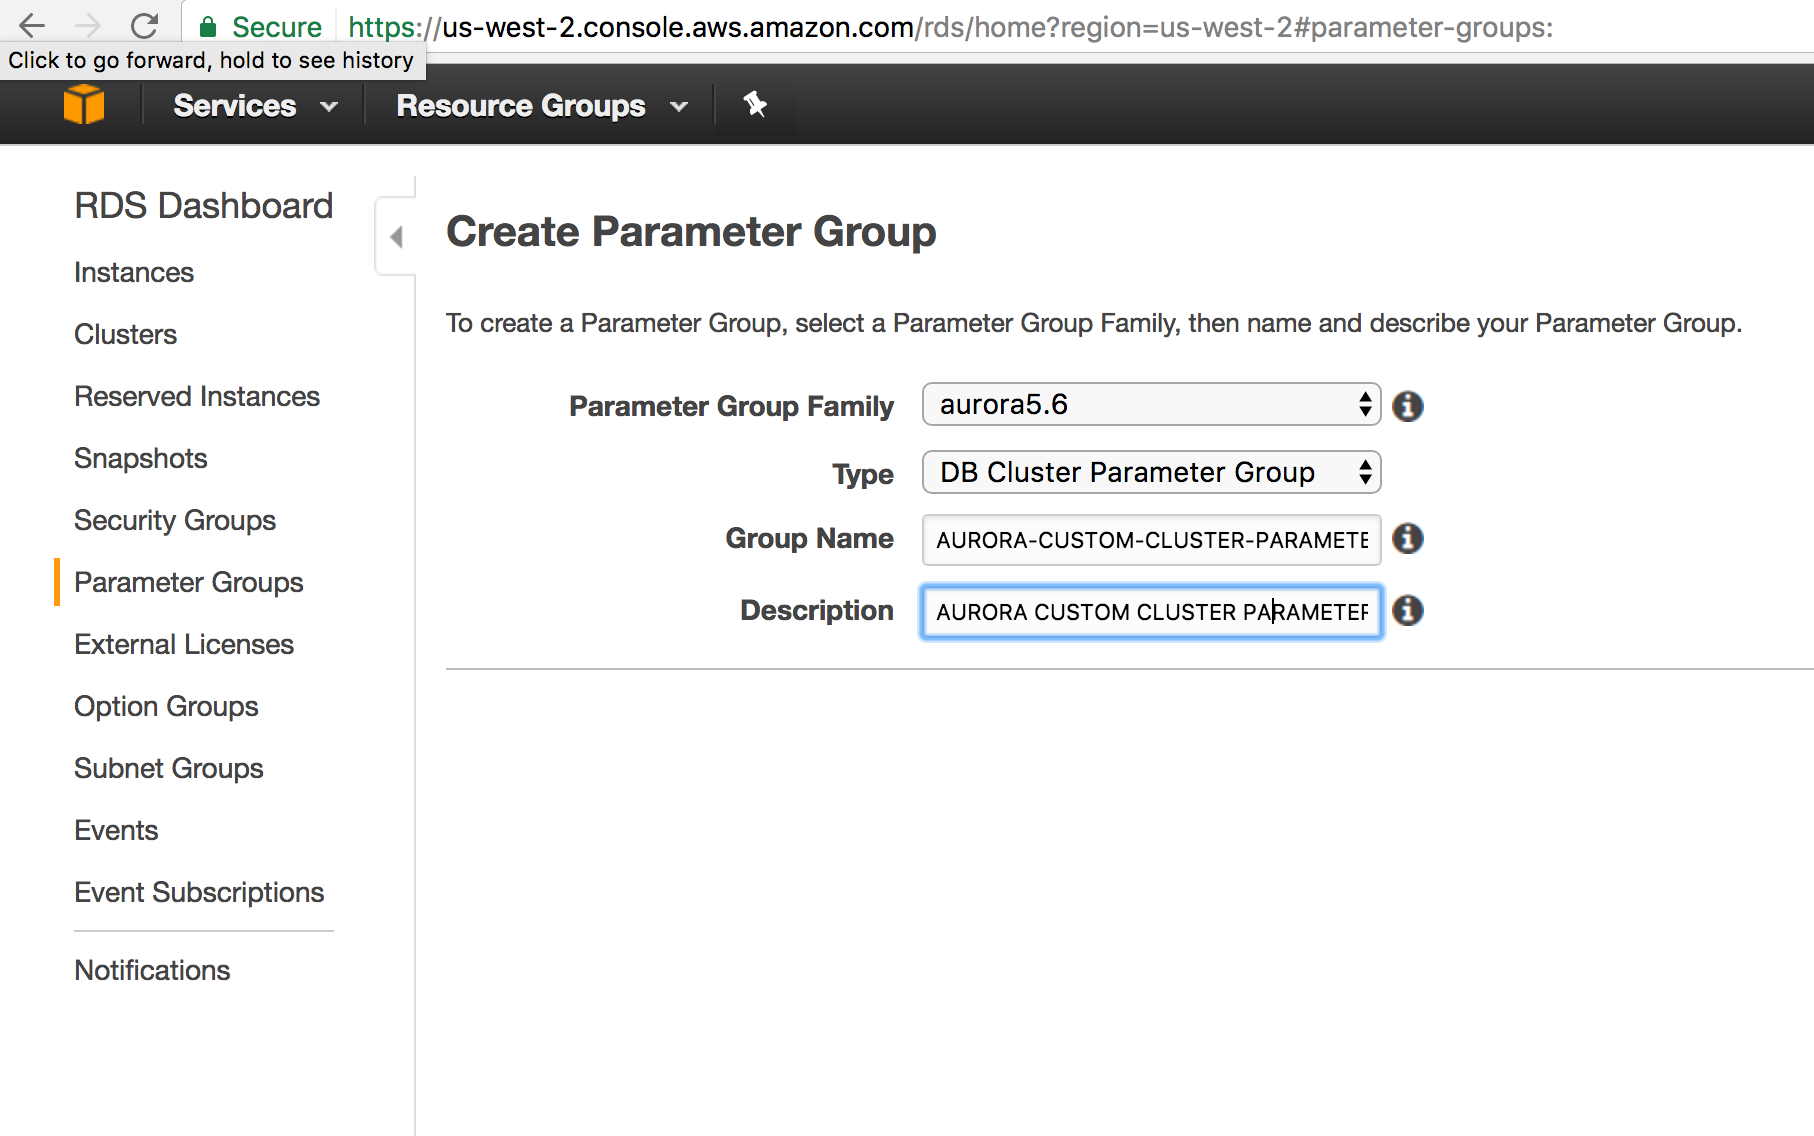 AURORA CLUSTER PARAMETER GROUP